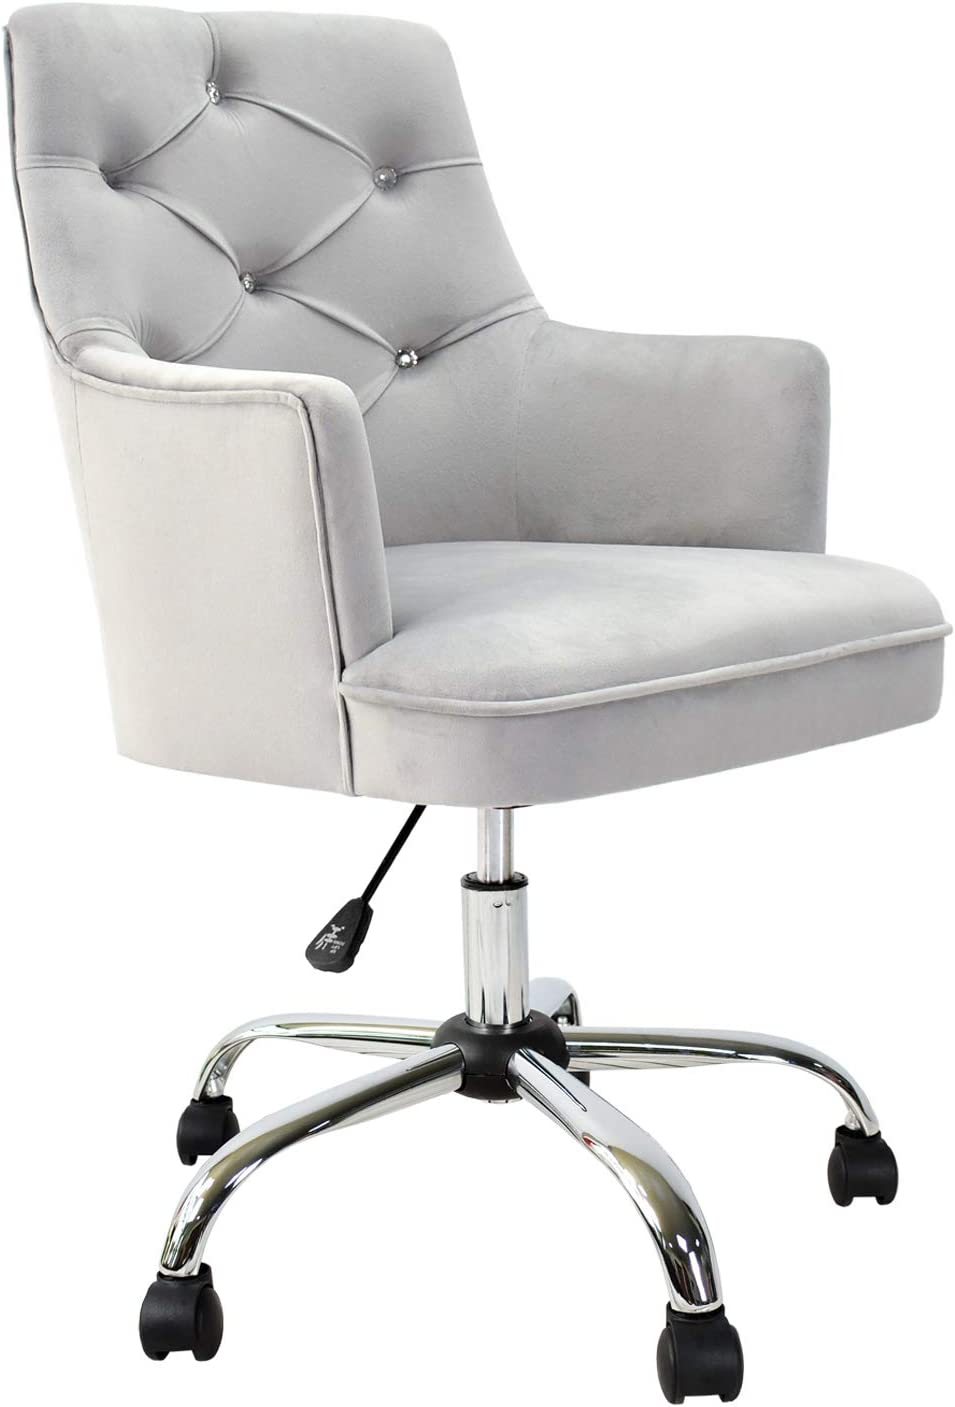 XIZZI Cute Desk Chair,Computer Chair, Adjustable Swivel Home Office Chair,  Office Chair with Wheels and Arms (Grey)